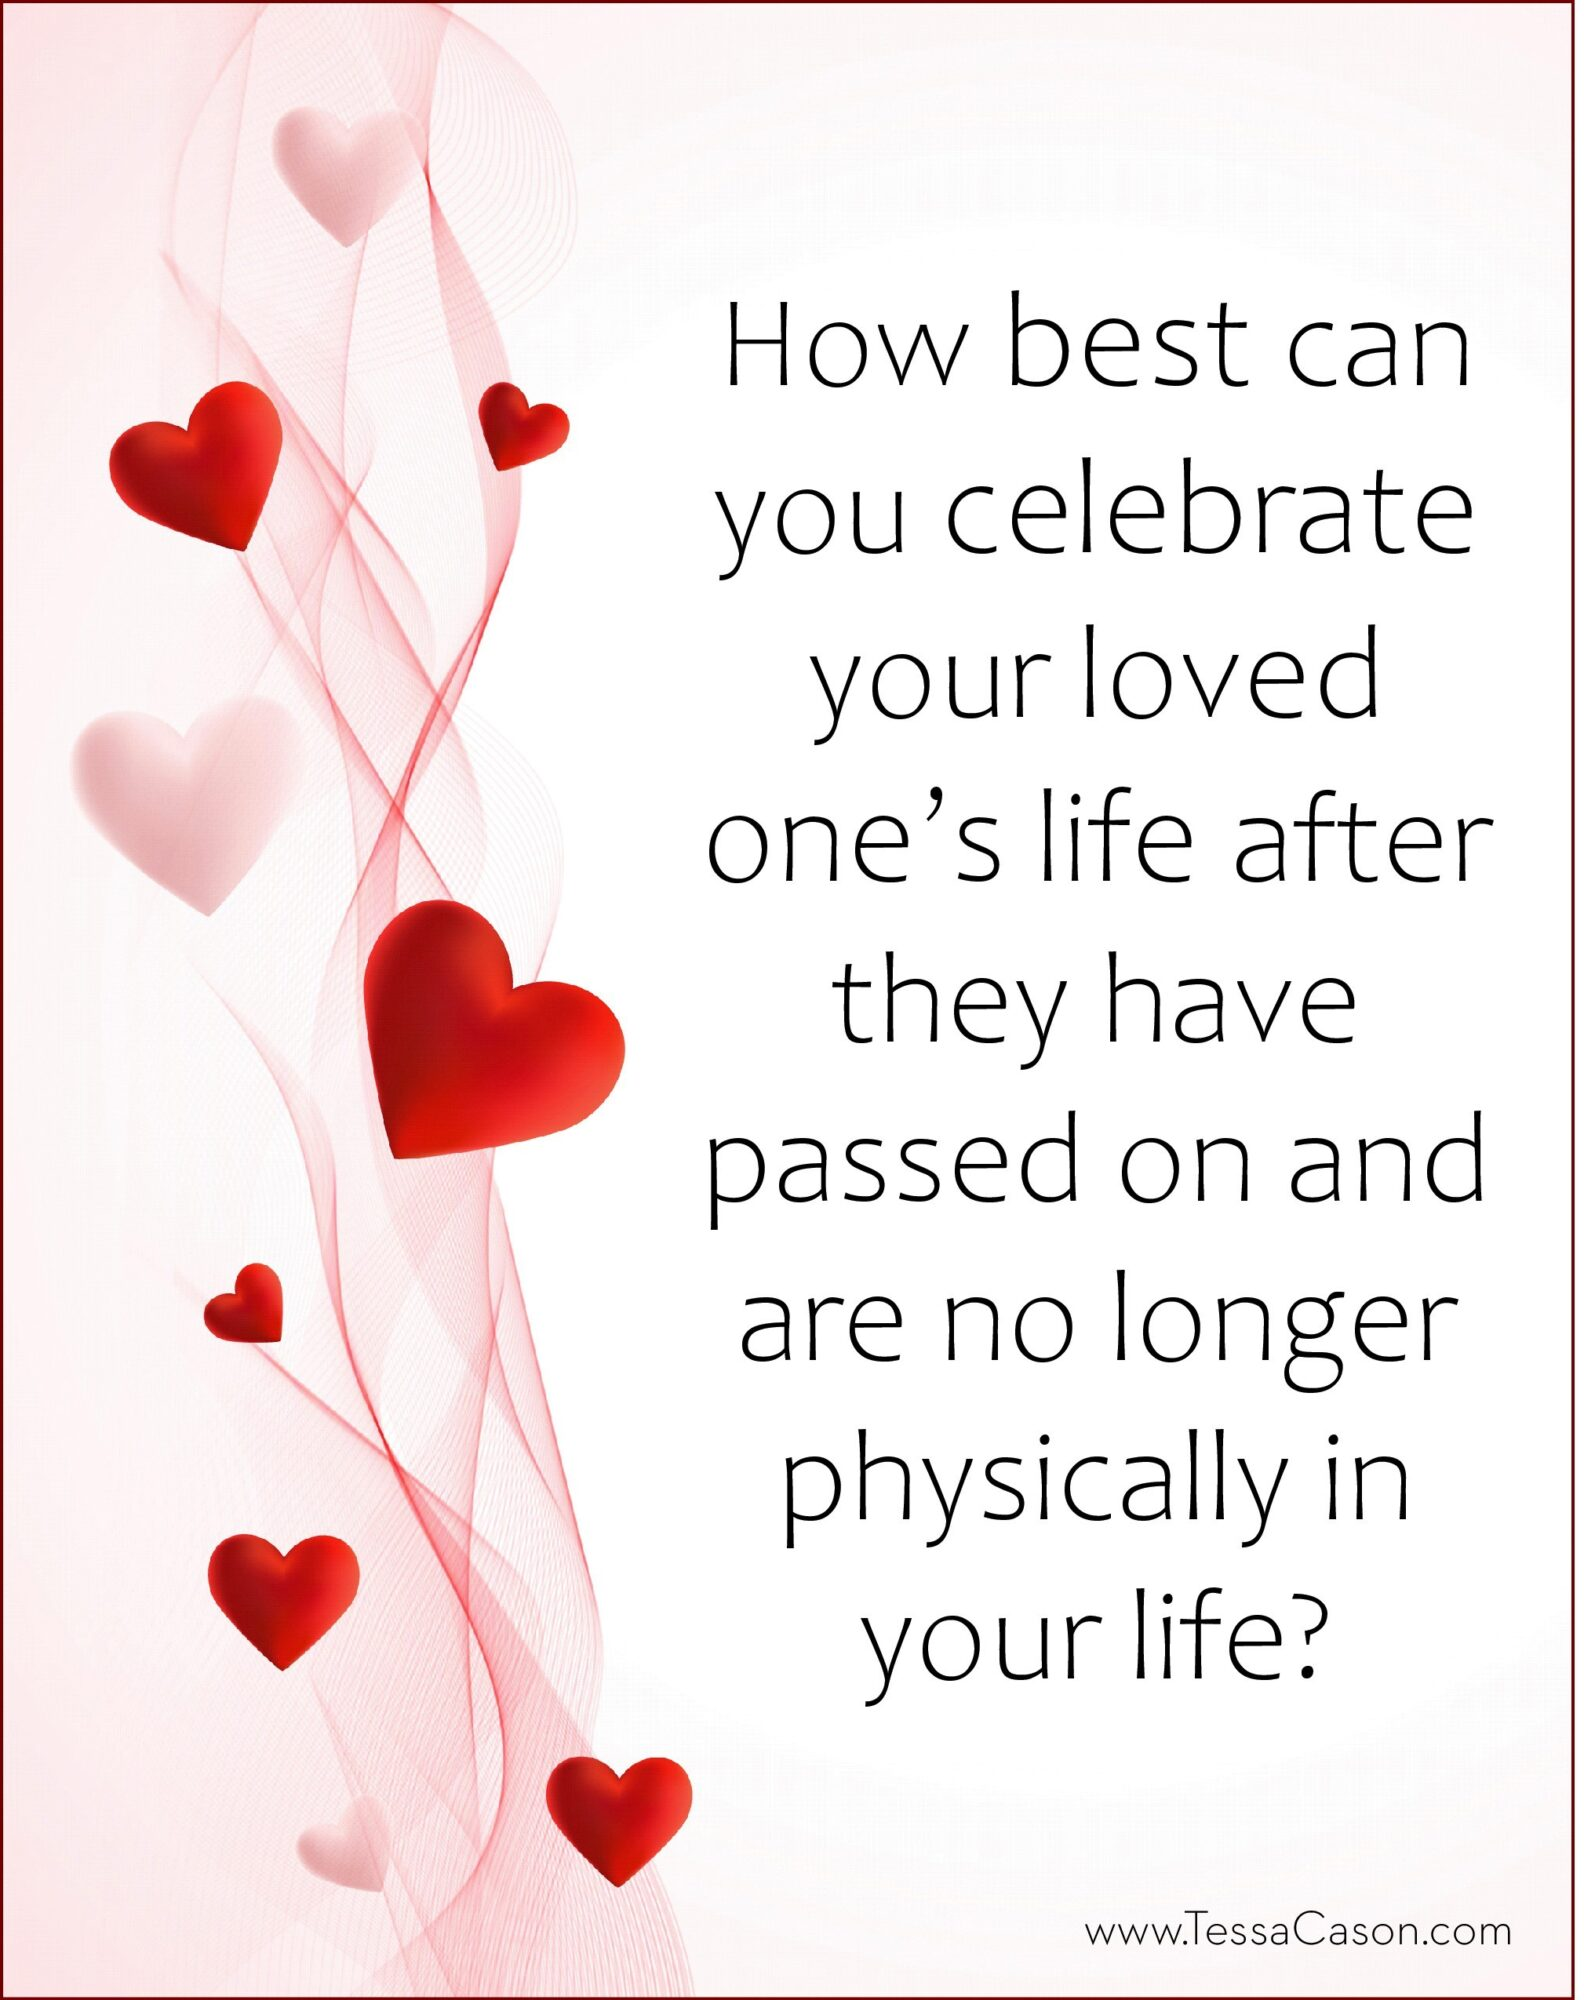 How best can you celebrate your loved one after they have passed on